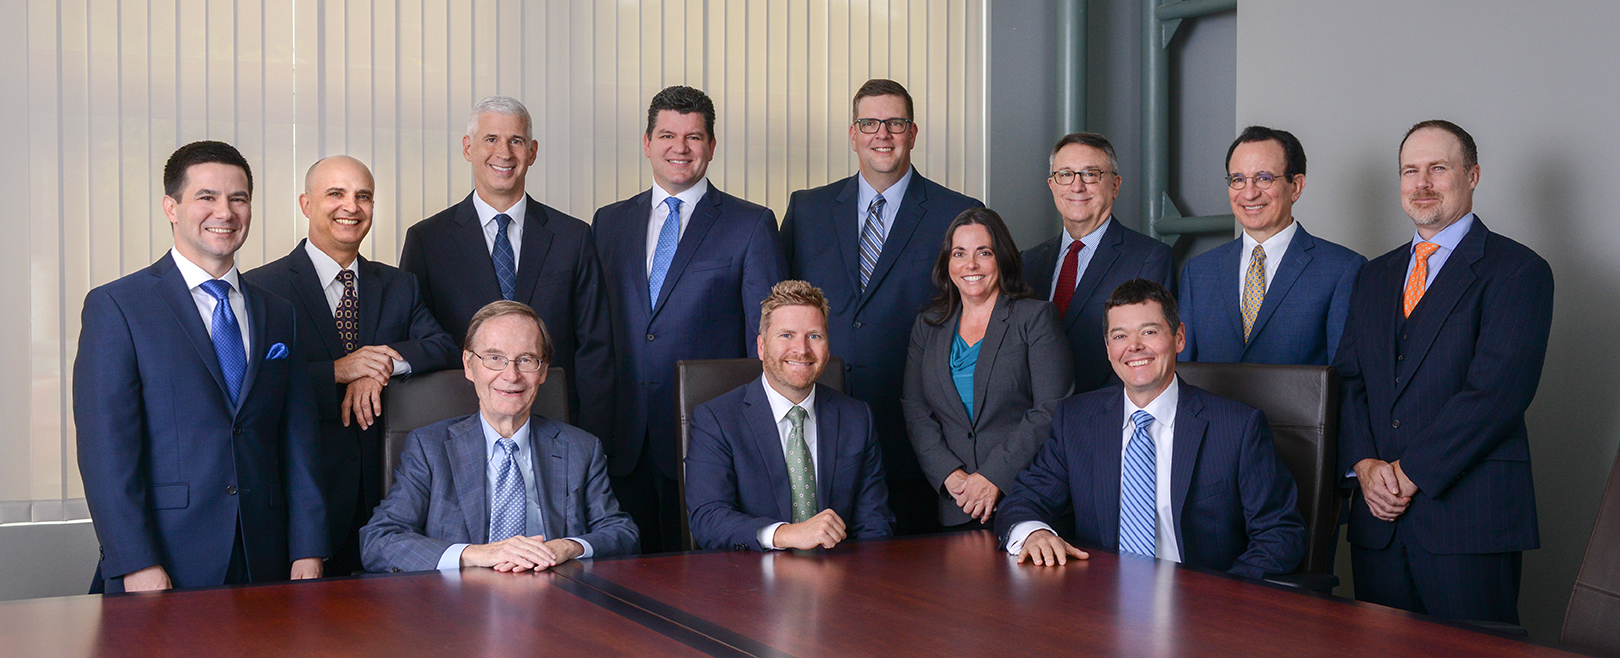 Allegheny Board of Directors